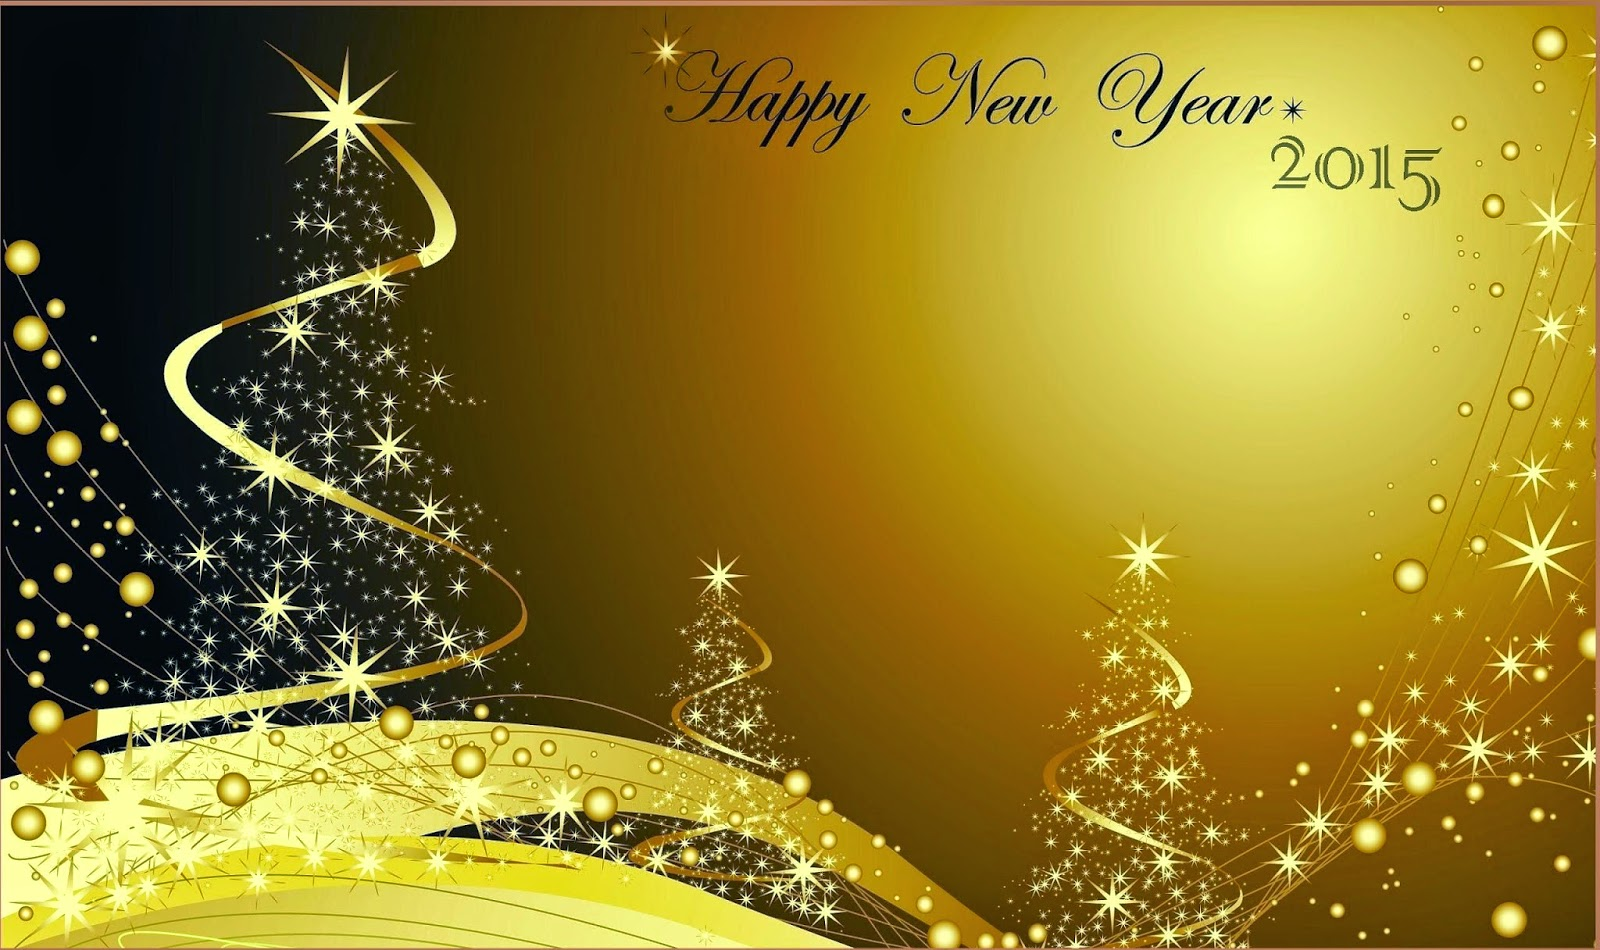 Happy new year 2015 greeting cards for free download happy new these new year greeting cards will be post on a social networking page like whatsappwechatstumble uponfacebooktwitter and more m4hsunfo